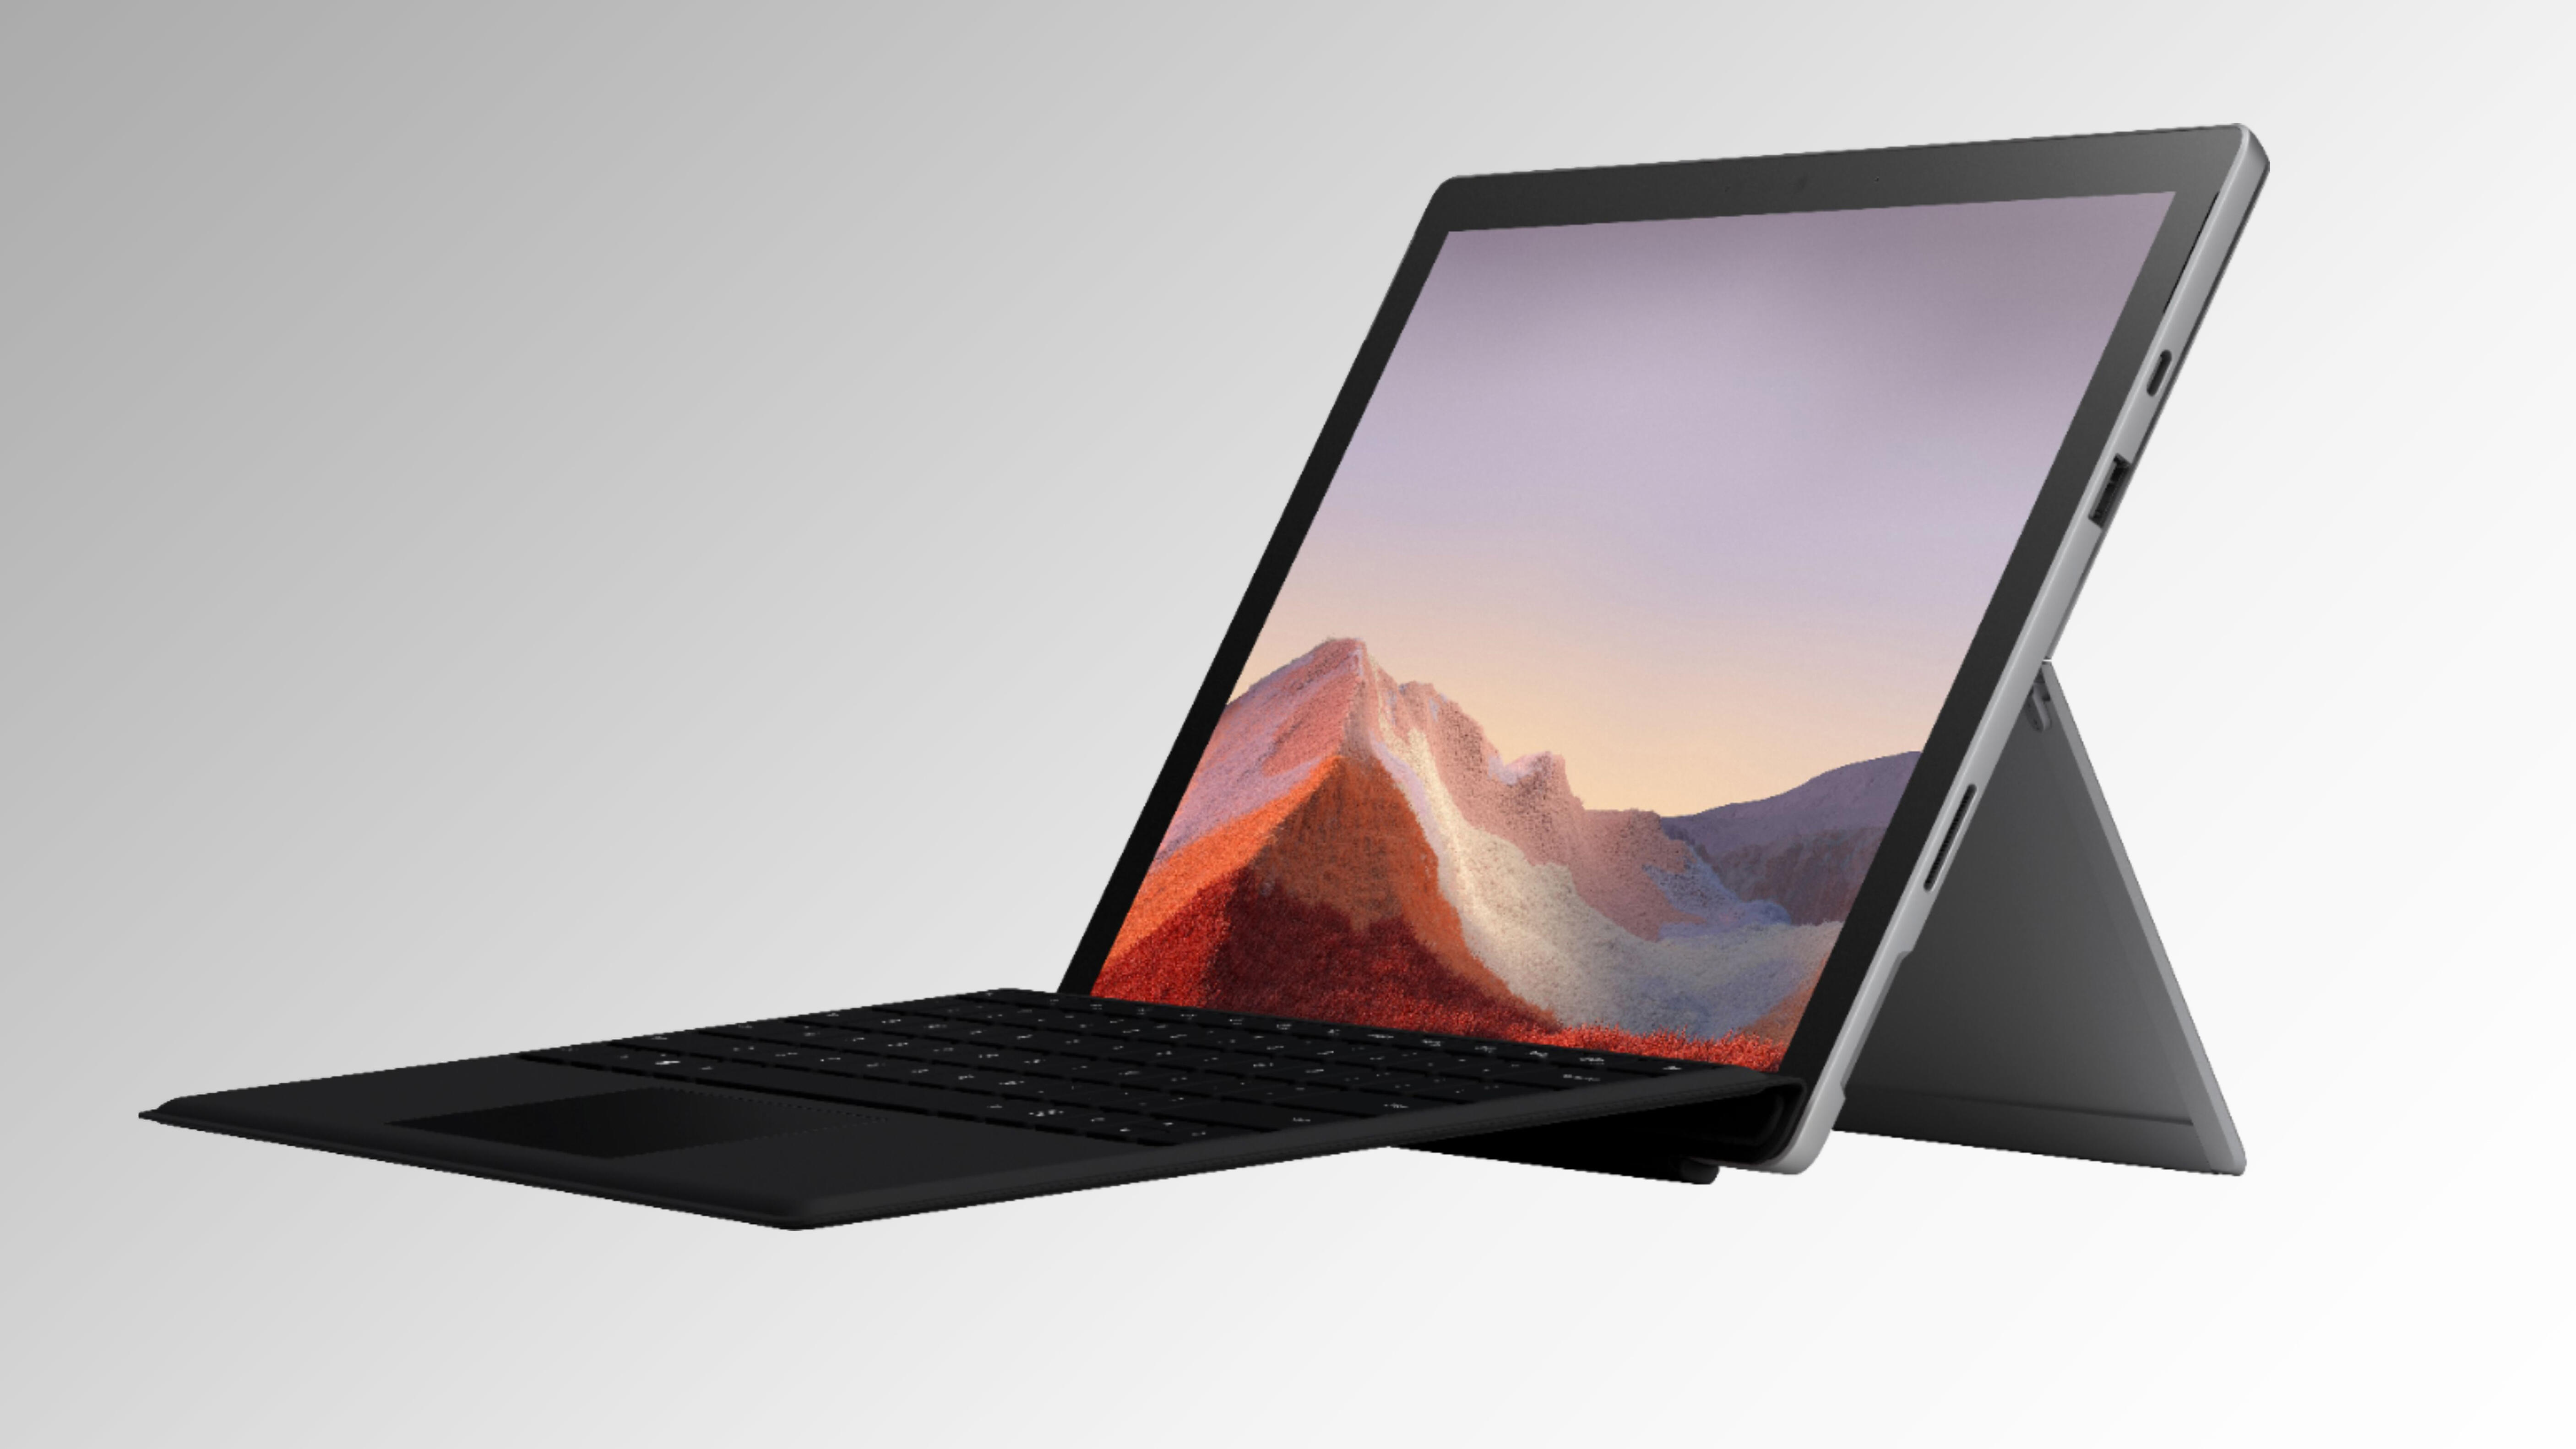 Save $360 on a Surface Pro with weekend deals from Best Buy thumbnail